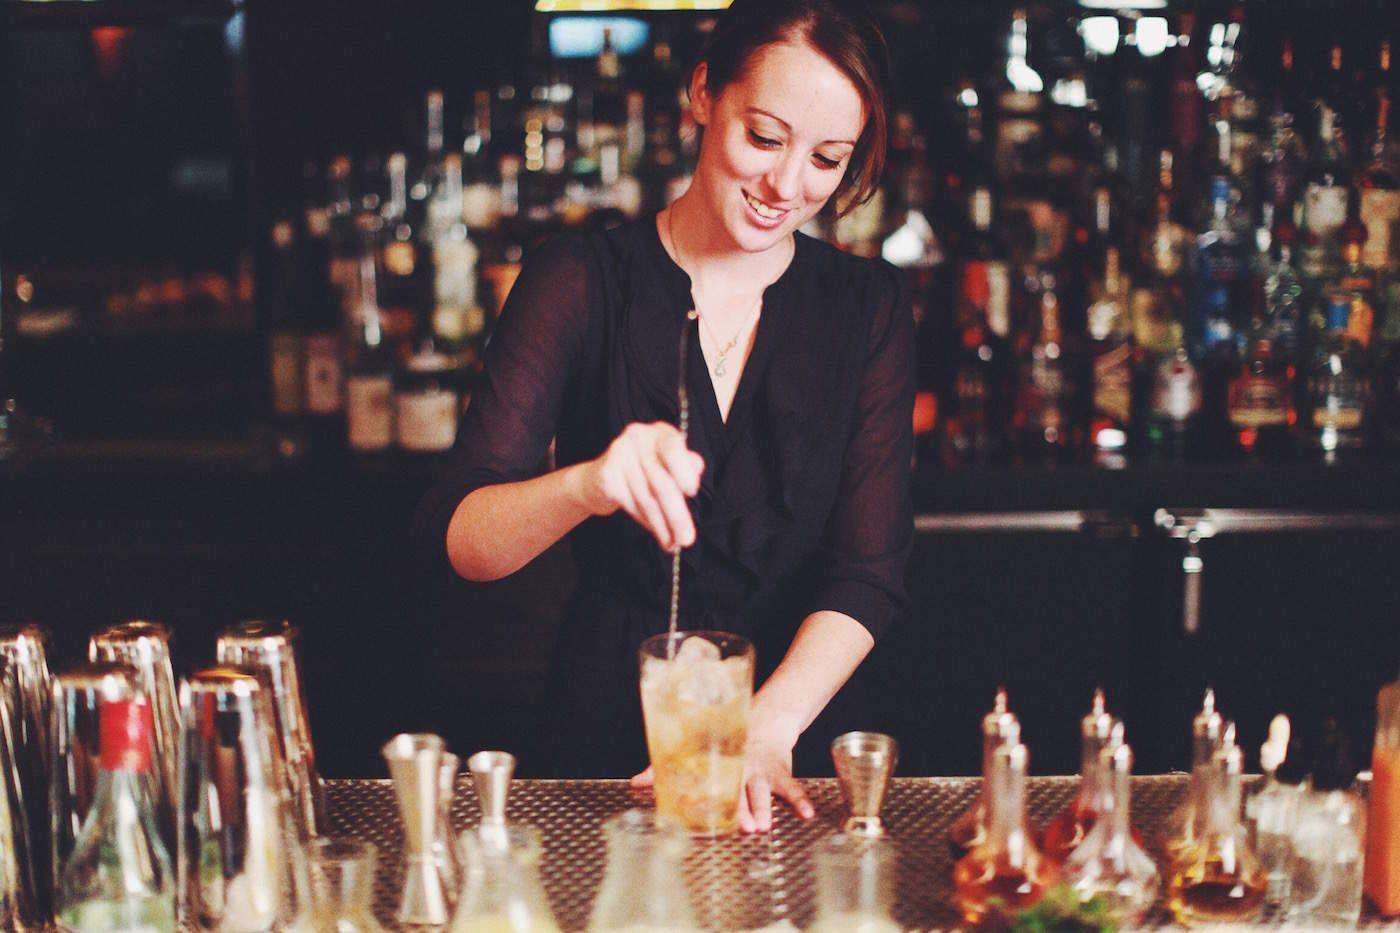 Female a dating advice bartender images